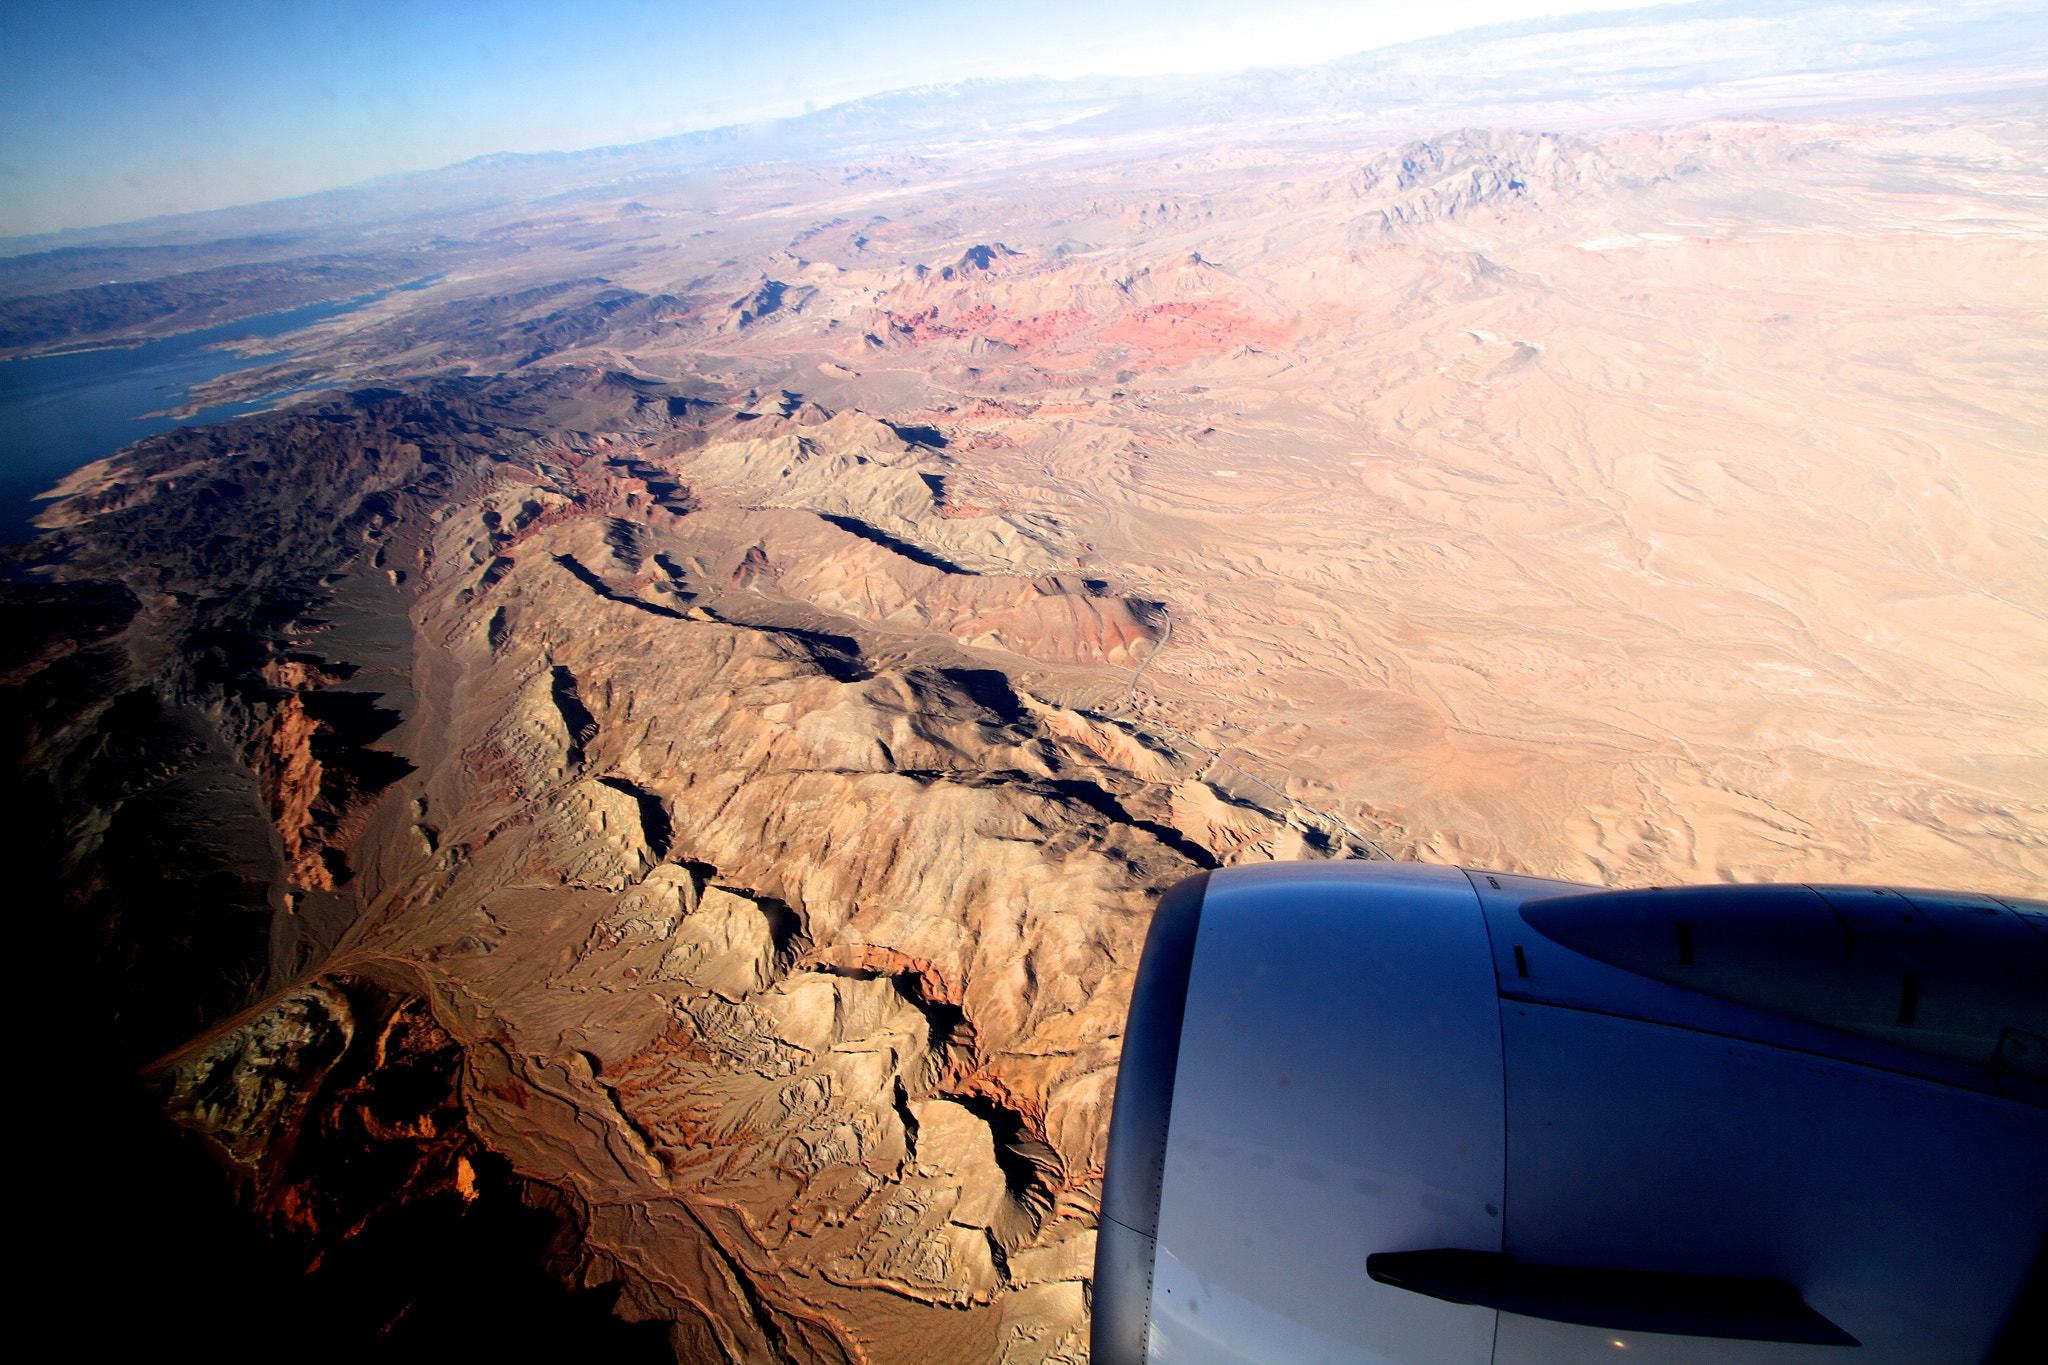 Photograph Approaching Las Vegas over Lake Mead by Chris Ratzlaff on 500px